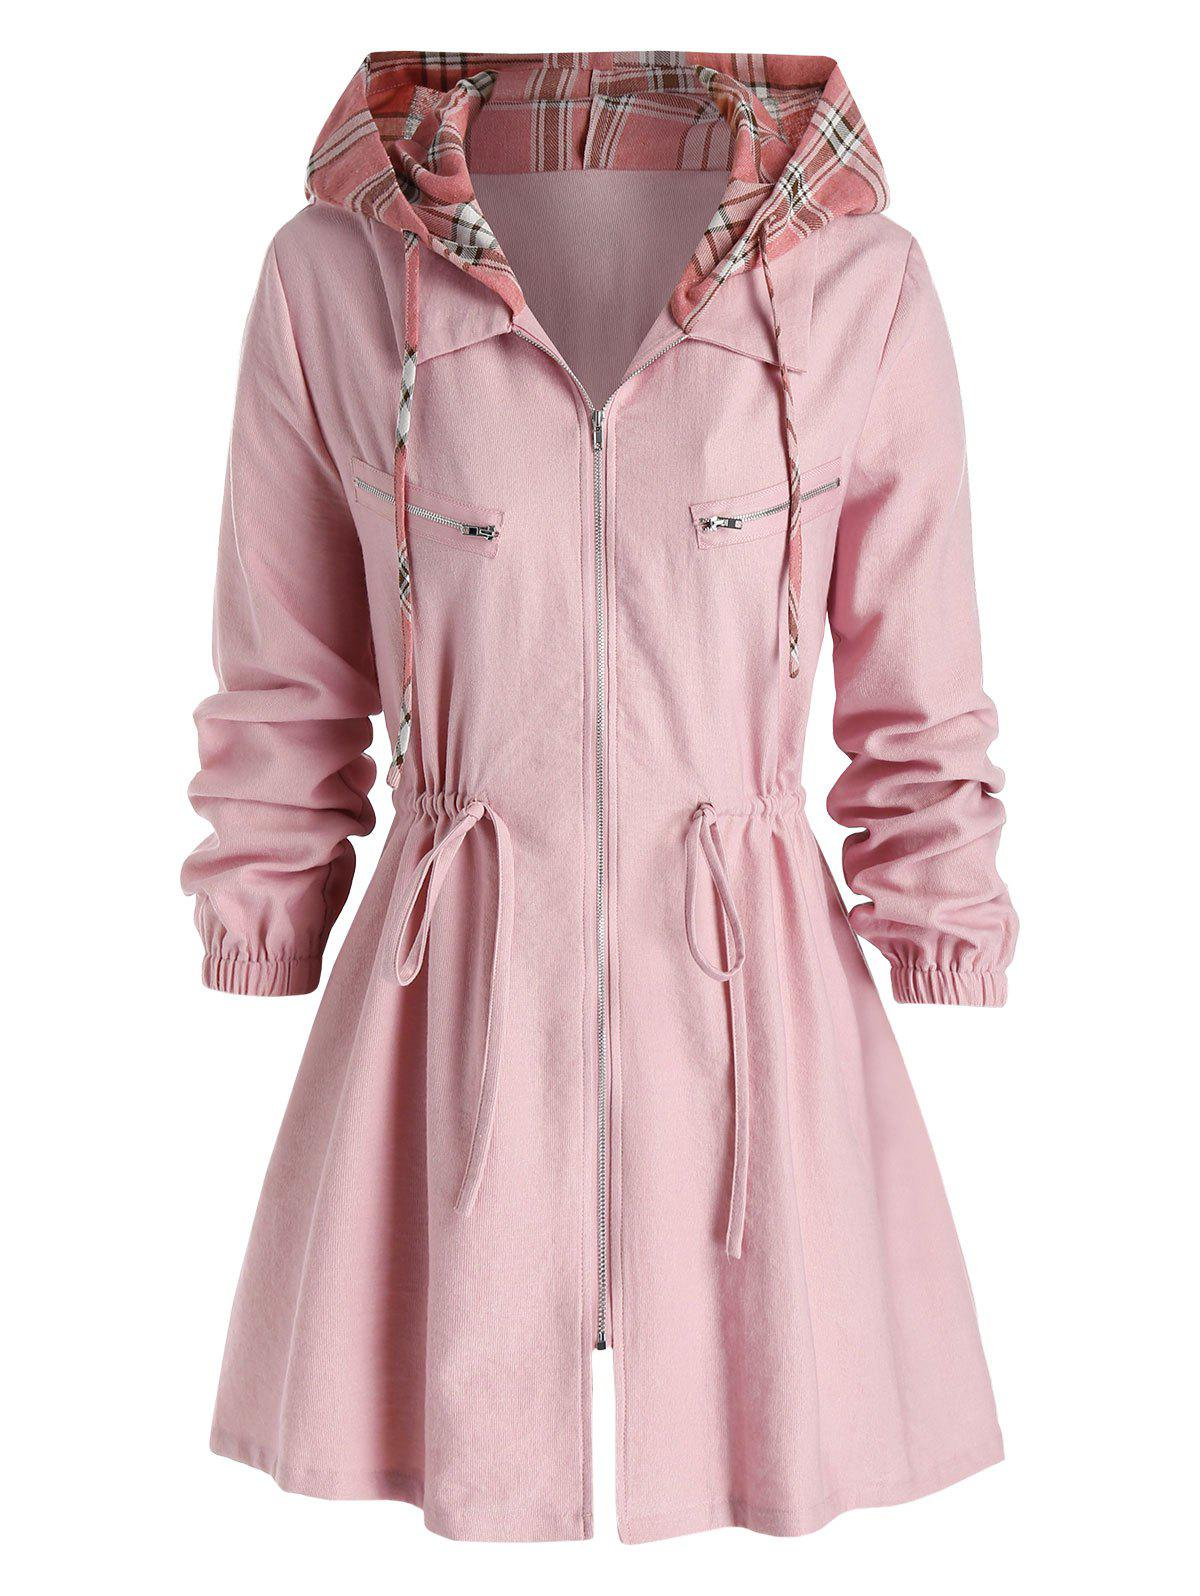 Plus Size Checked Hooded Drawstring Zipper Coat - PINK 5X